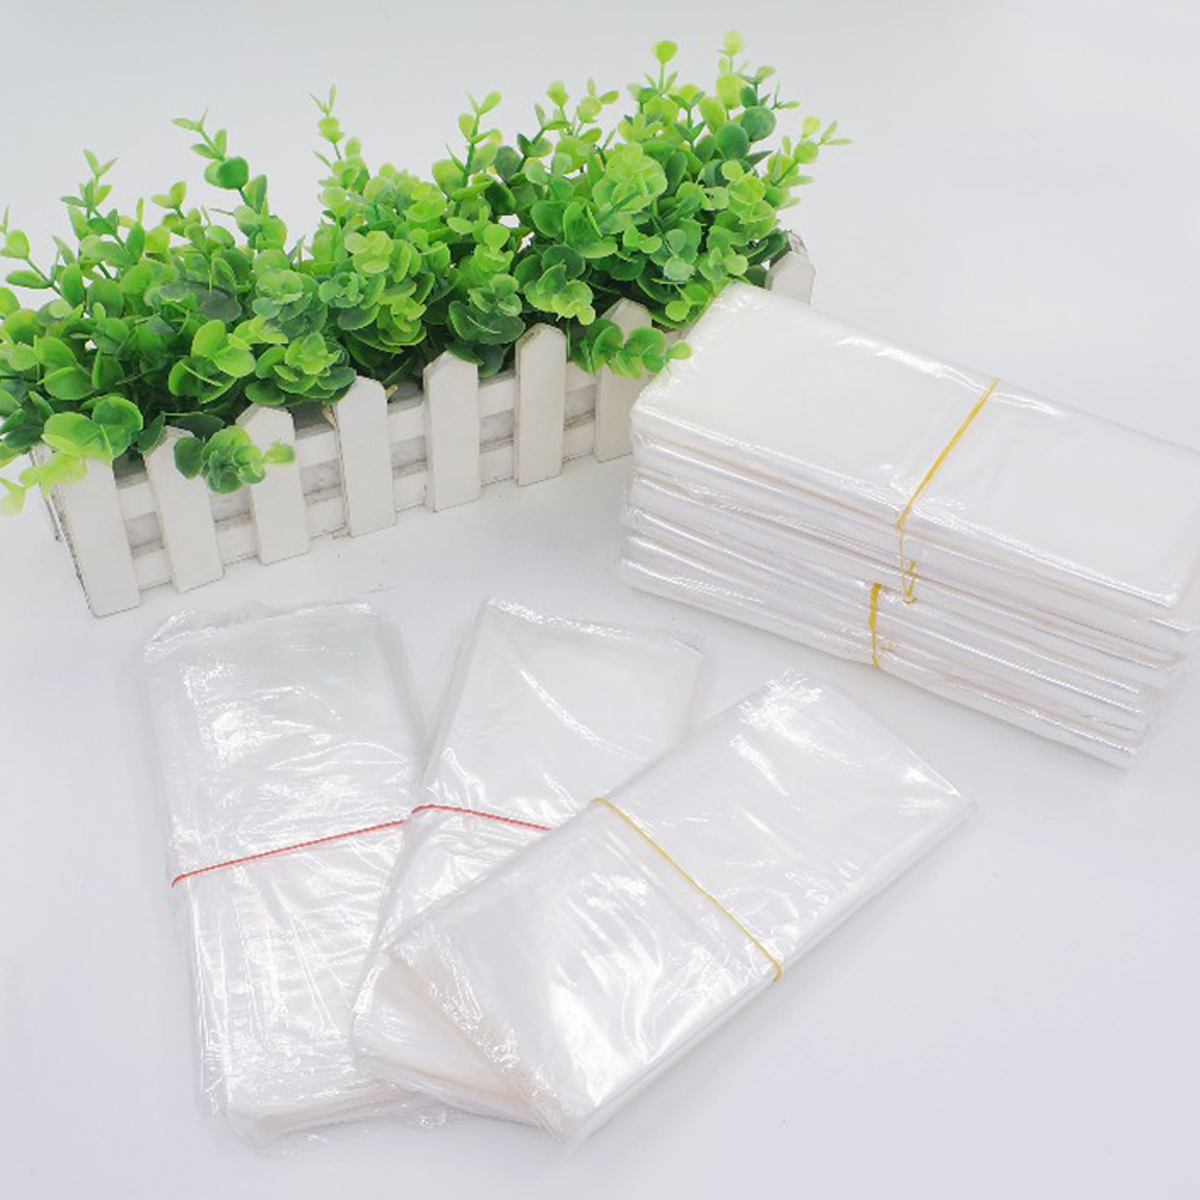 50Pcs 14x20 Inch POF Shrink Film Wrap Bags Transparent Clear Heat Seal Package Bags